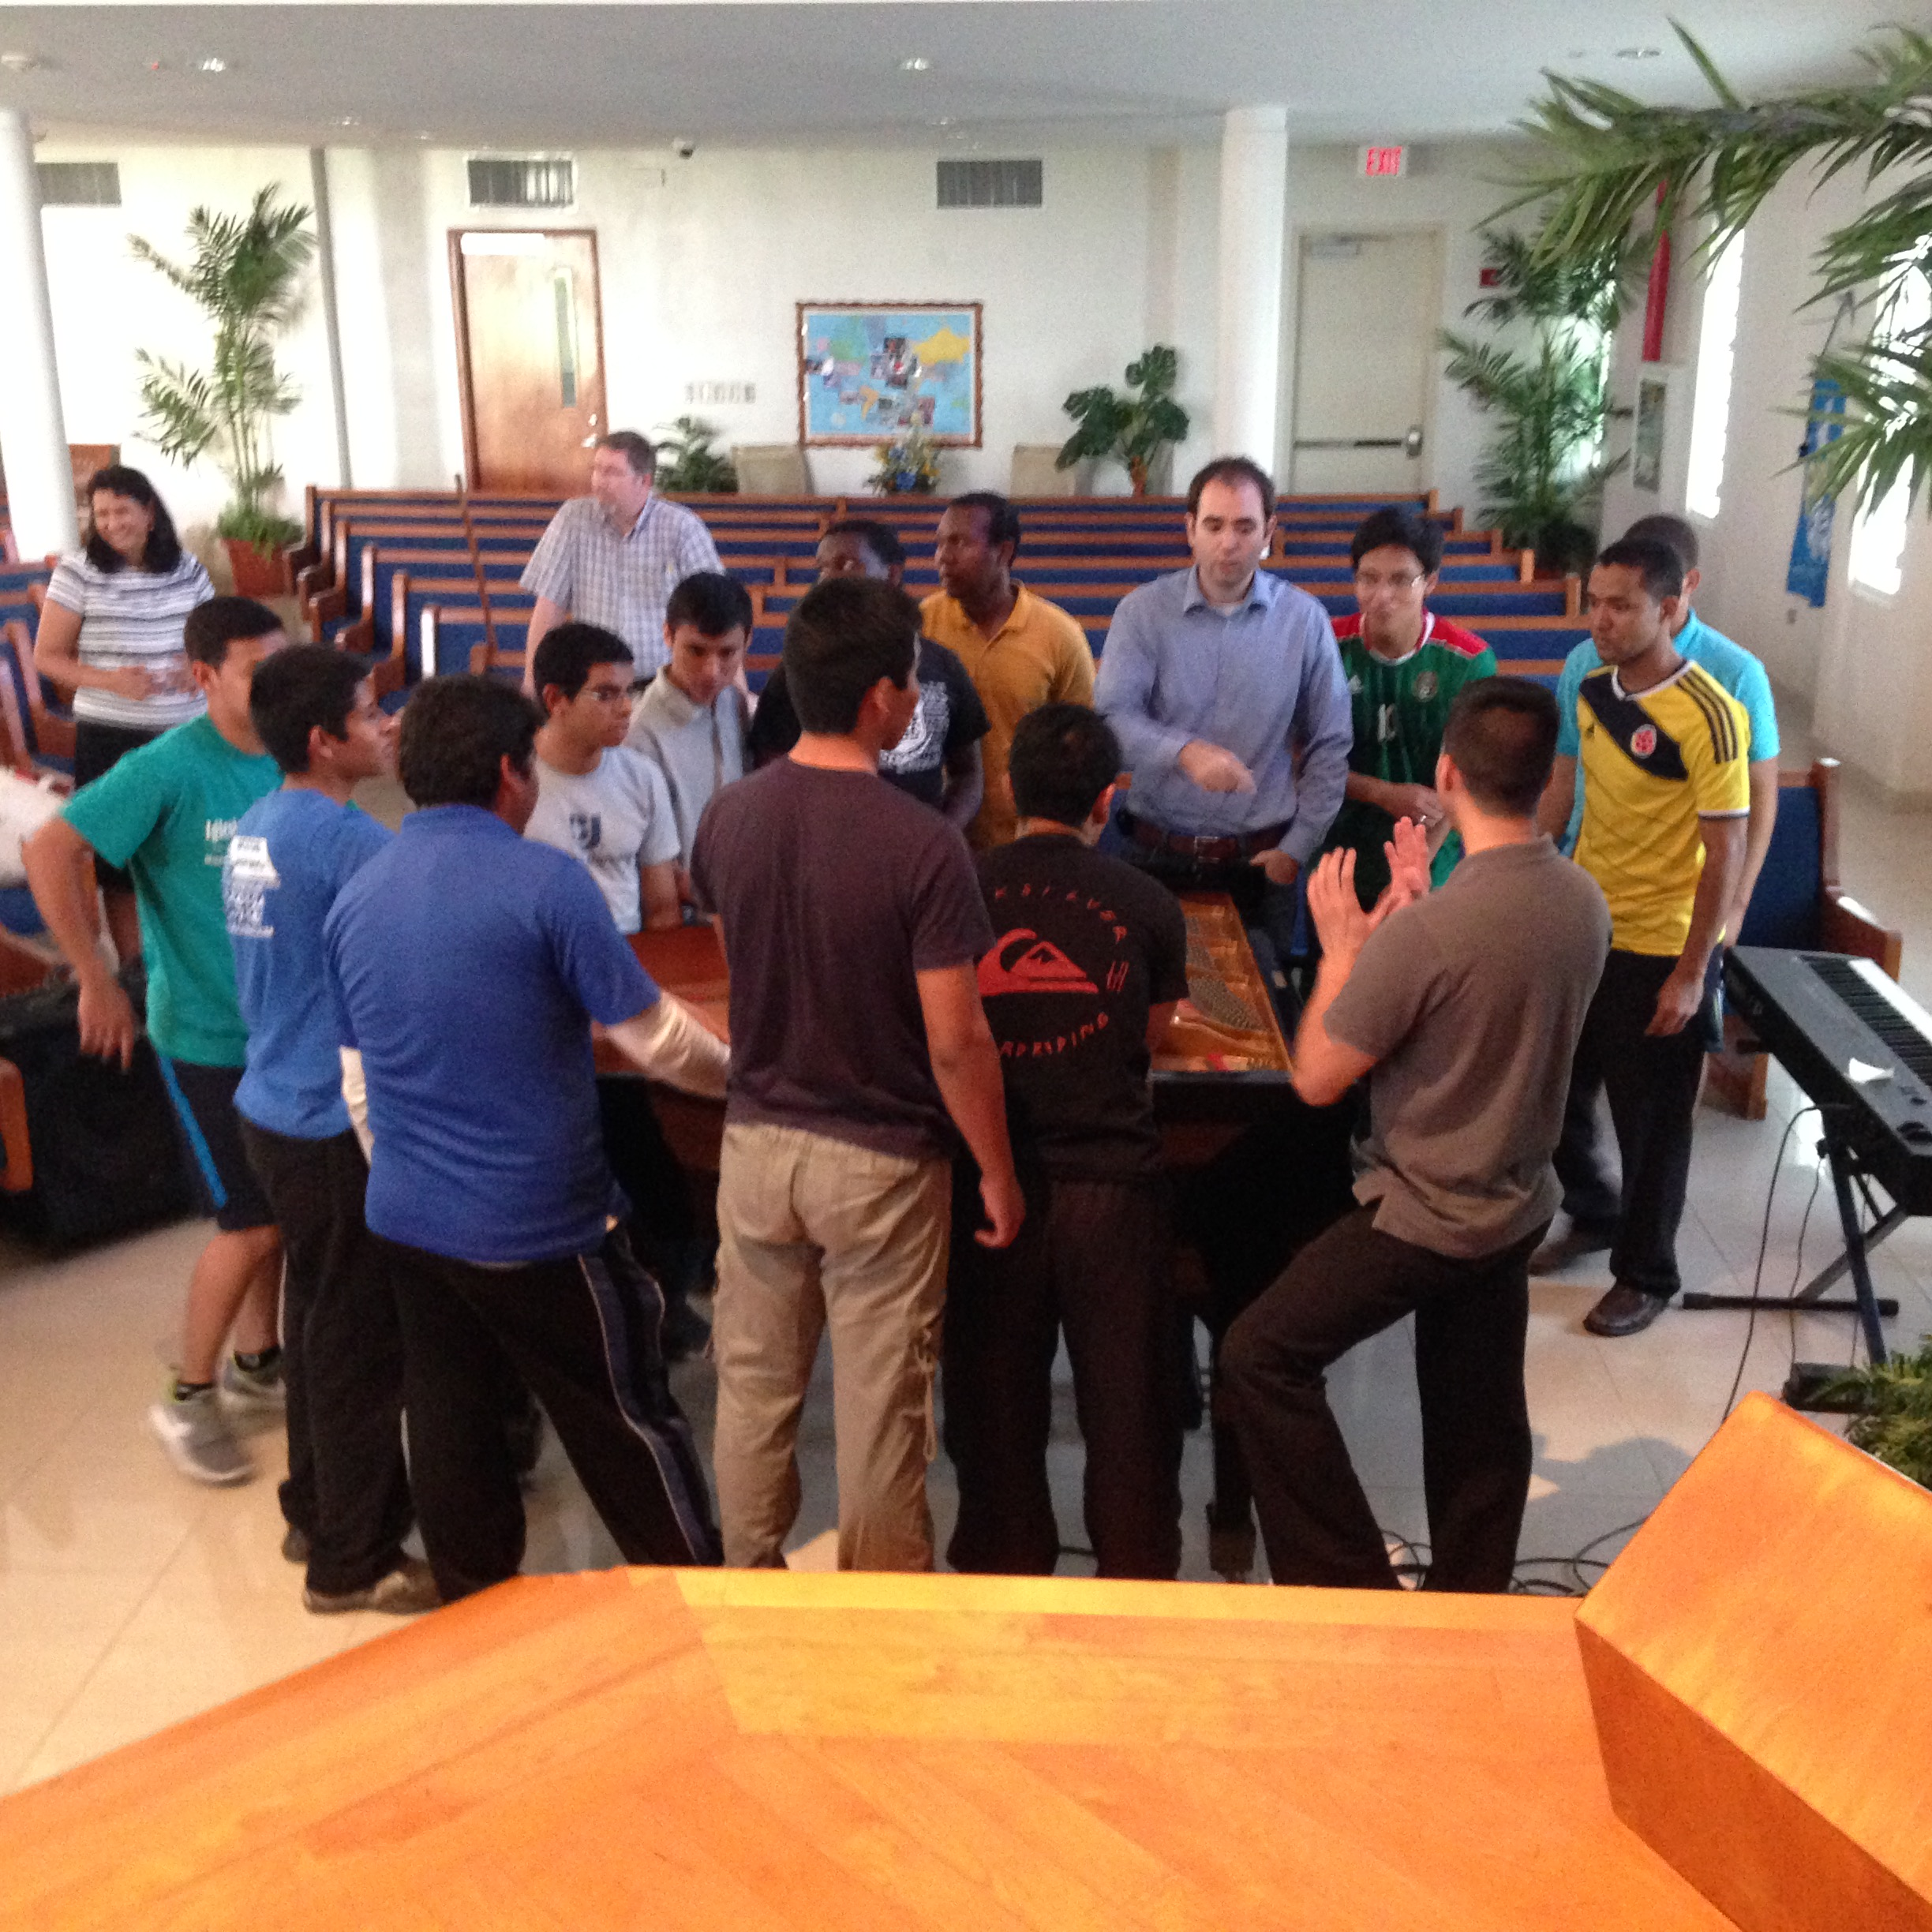 Moving the piano to the platform for the concert.  These guys are all students at Puerto Rico Baptist College.